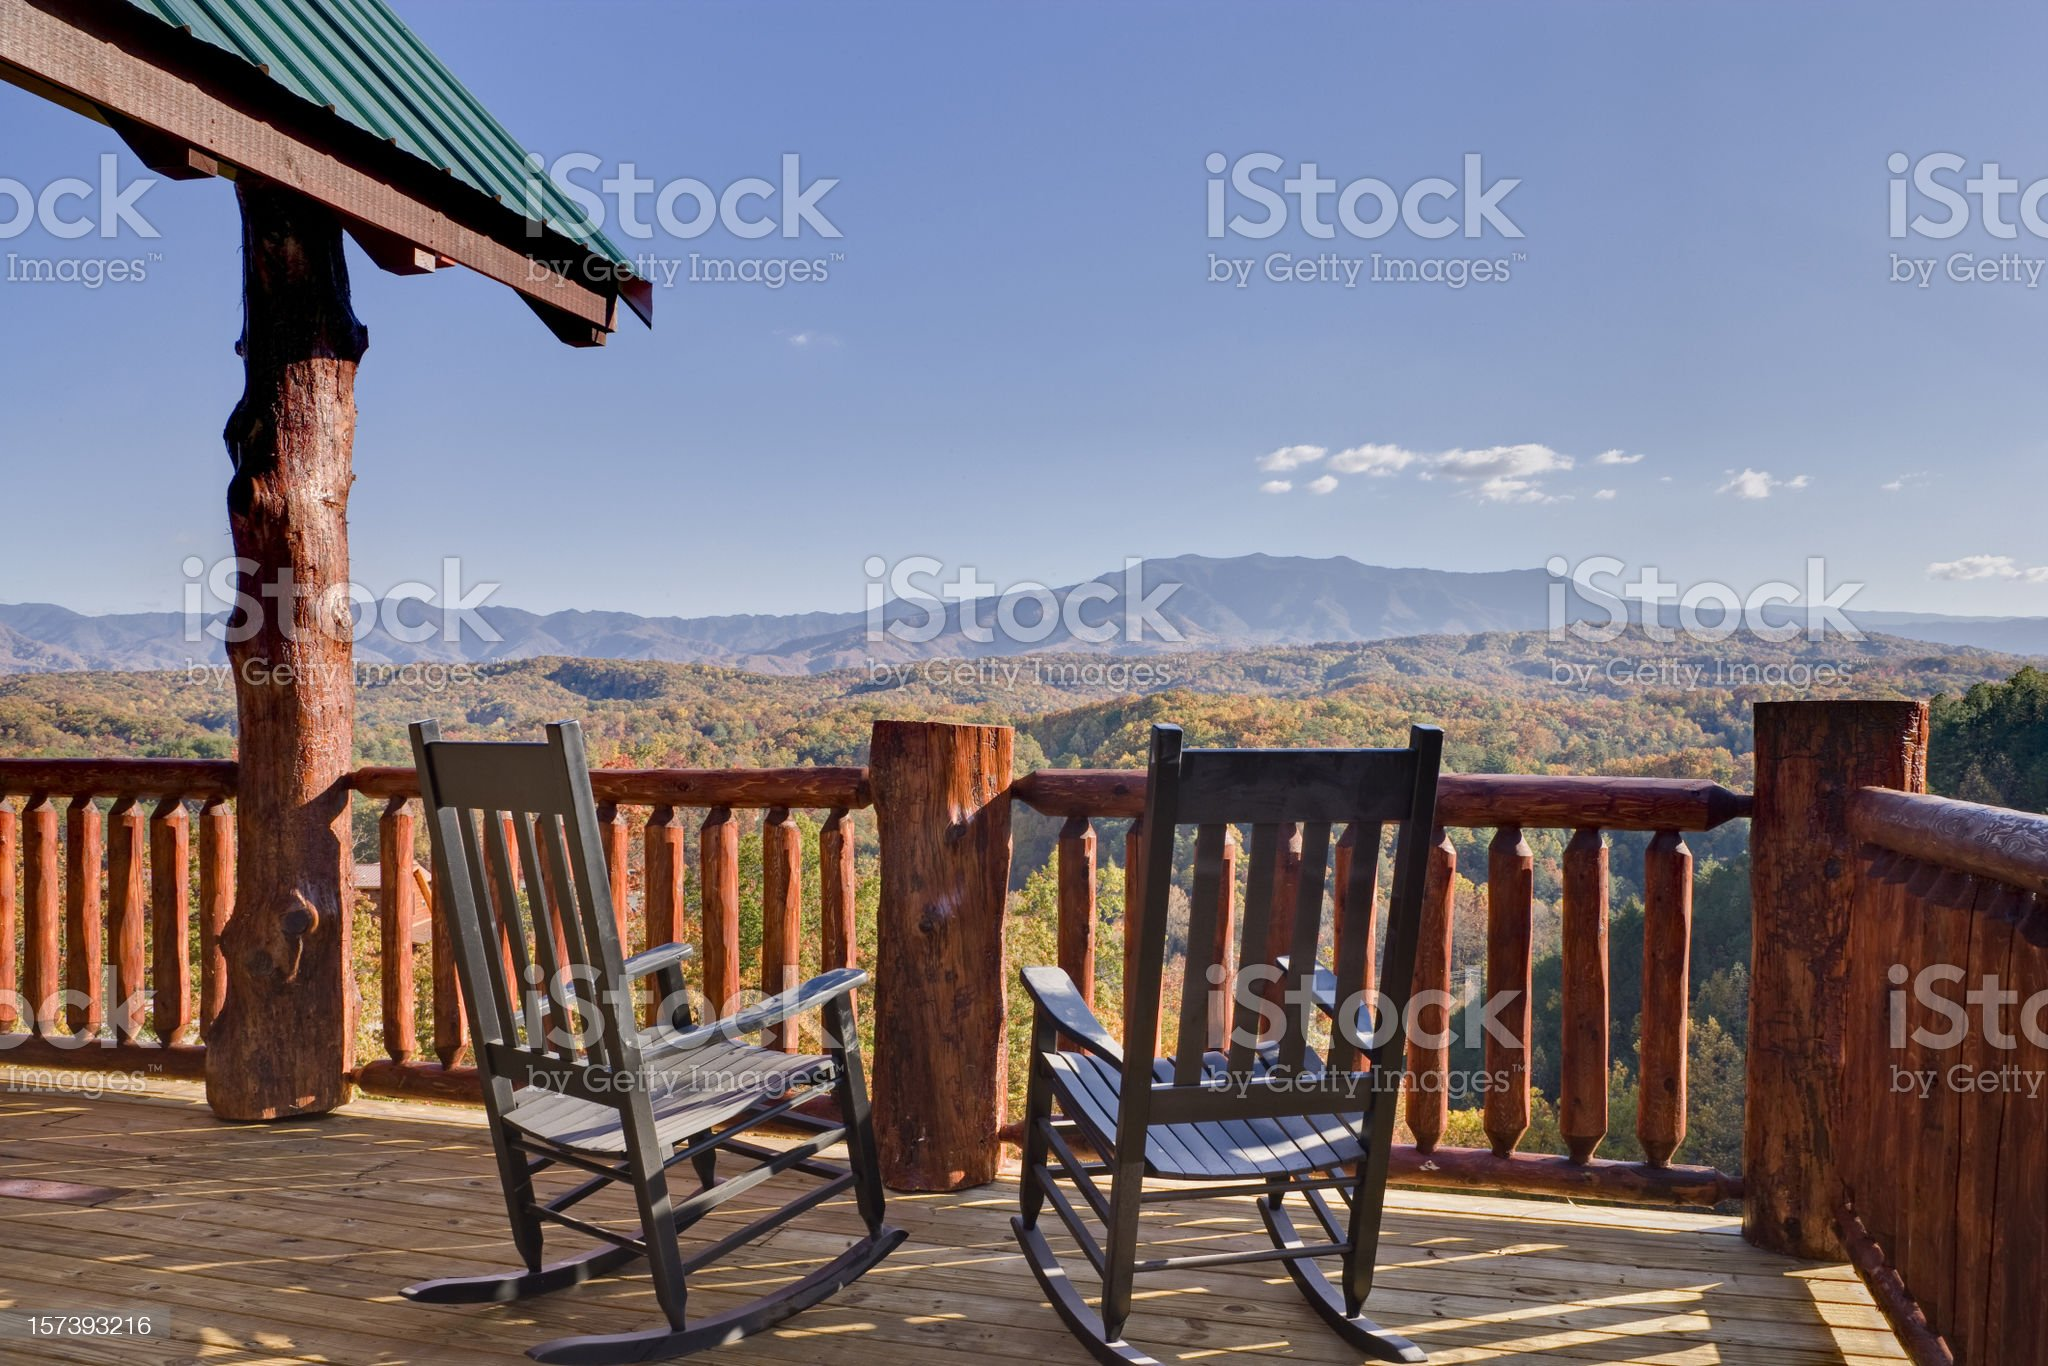 Rocking Chairs with a View royalty-free stock photo